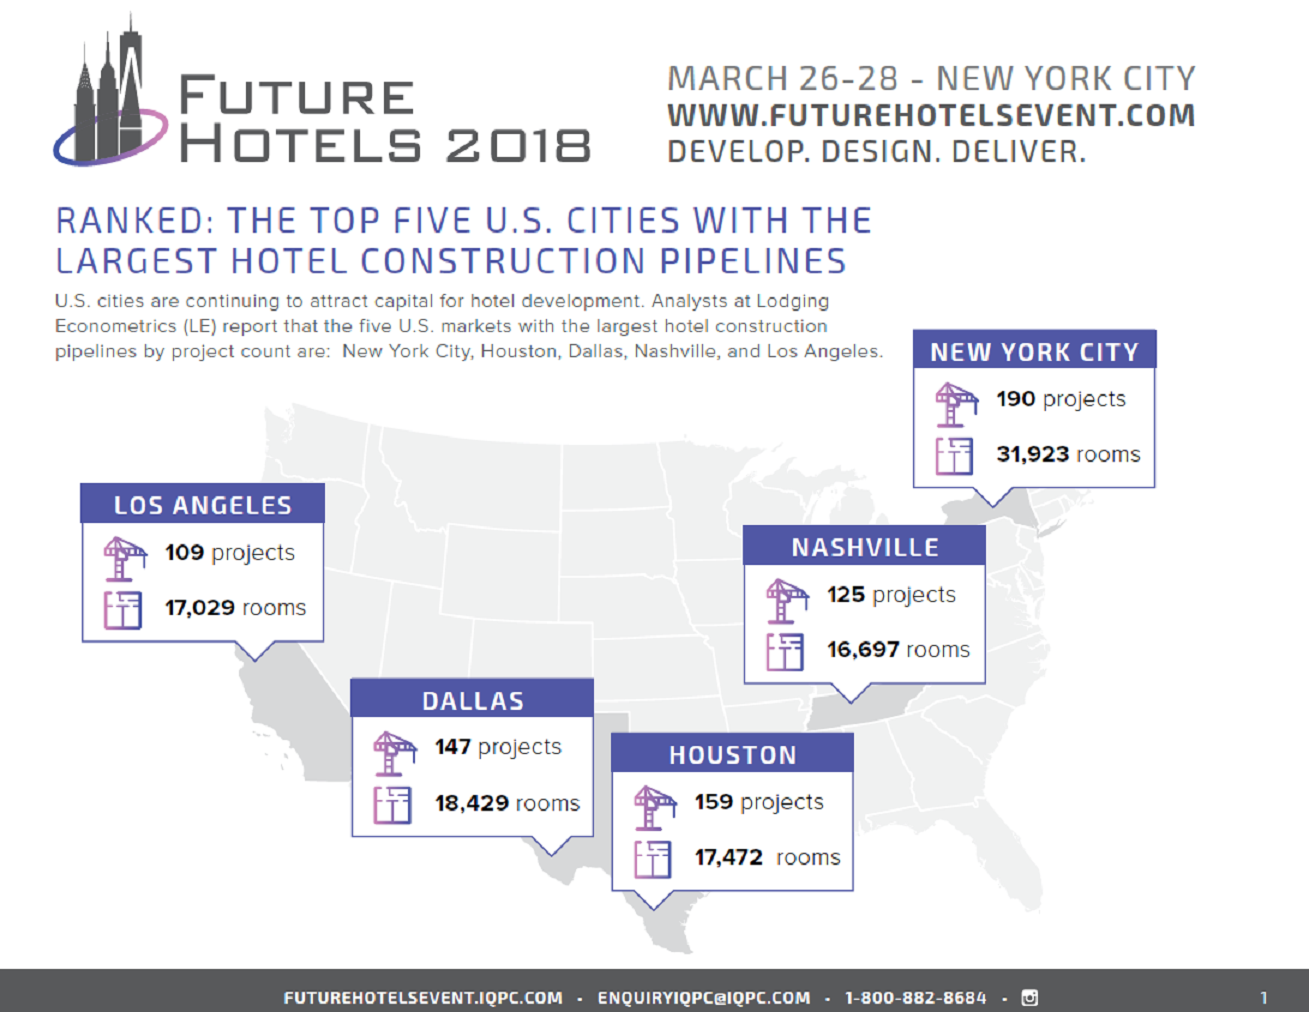 REPORT: U.S. Leading Cities for Hotel Construction in 2018